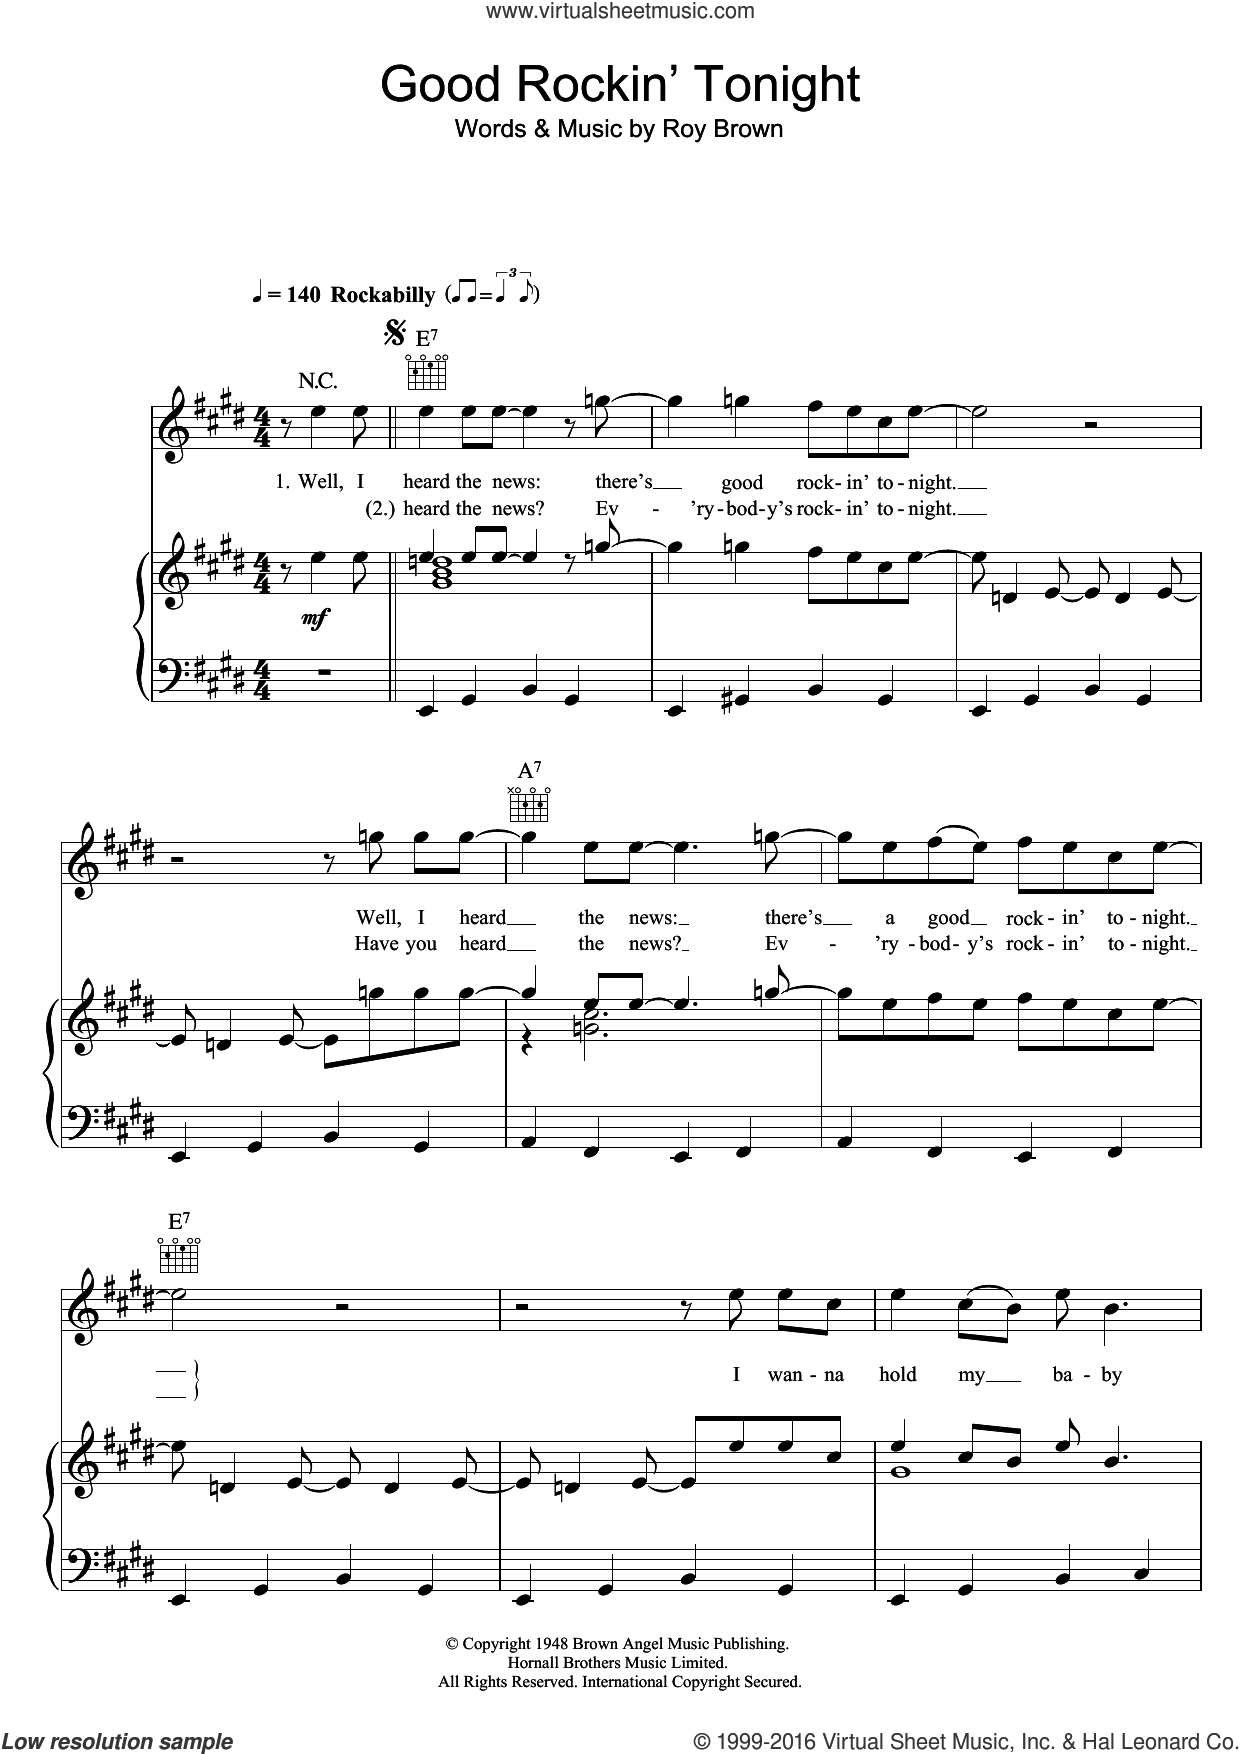 Good Rockin' Tonight sheet music for voice, piano or guitar by Elvis Presley and Roy Brown, intermediate skill level